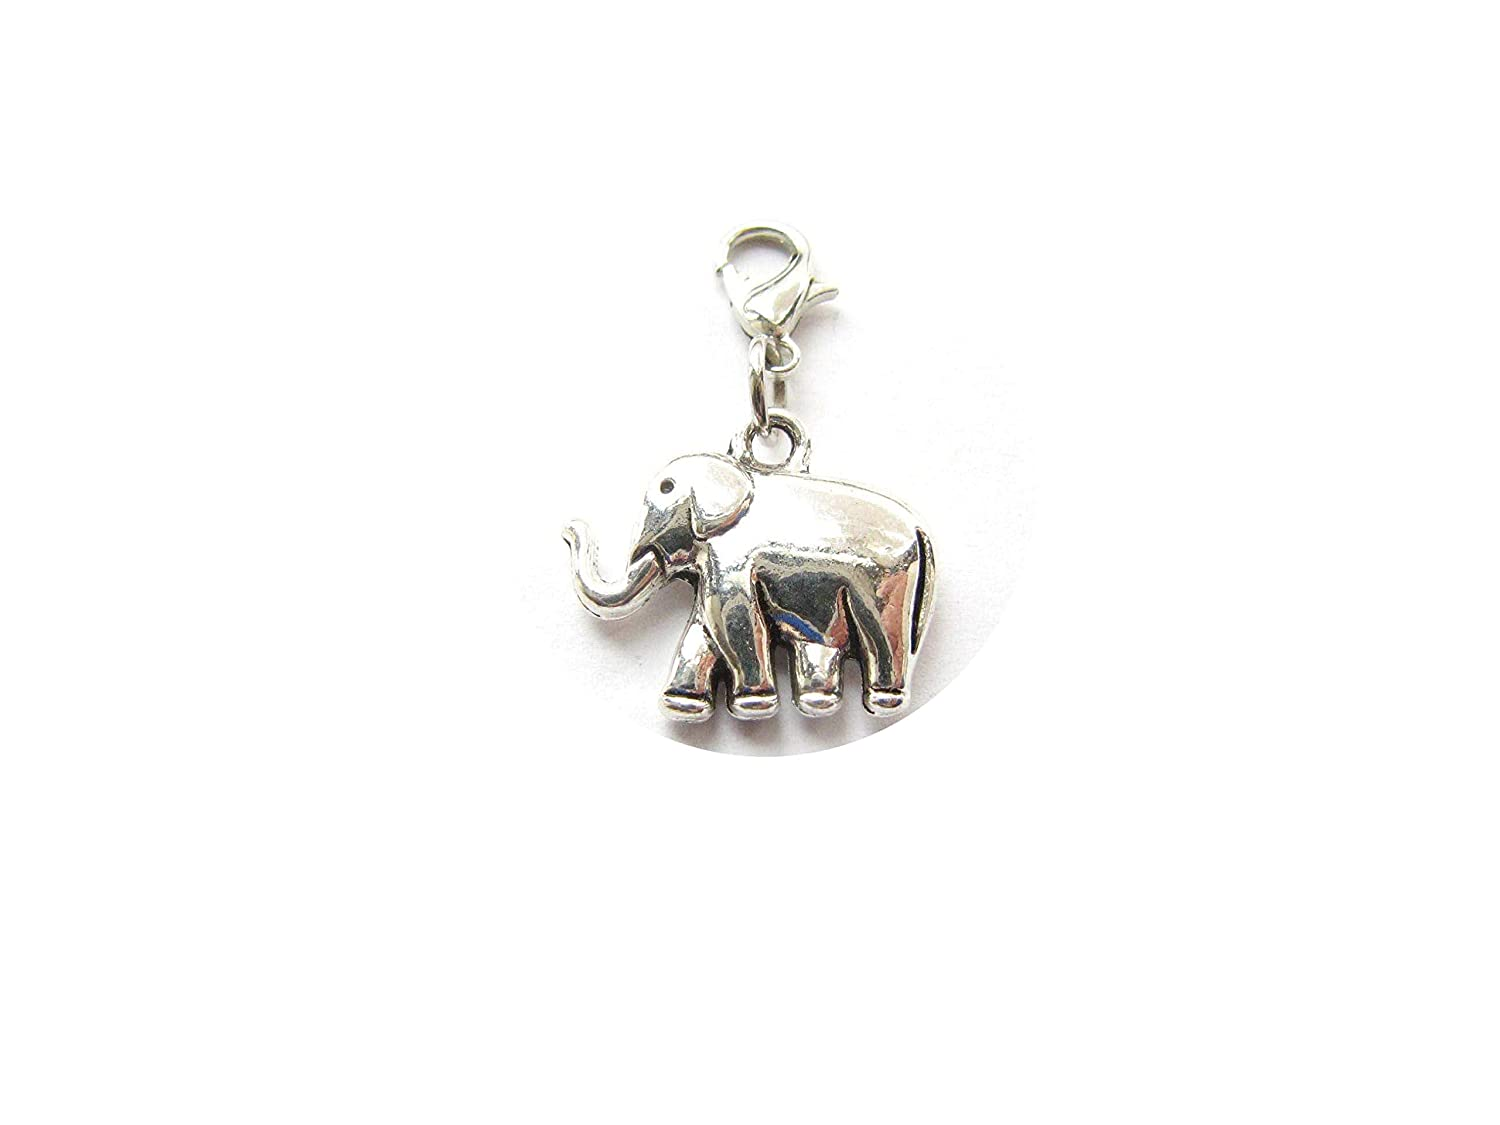 Lucky Elephant Clip-On Charm with Lobster Clasp-zipper pull #1 Charm Bracelets Necklace Charm Purse Charm